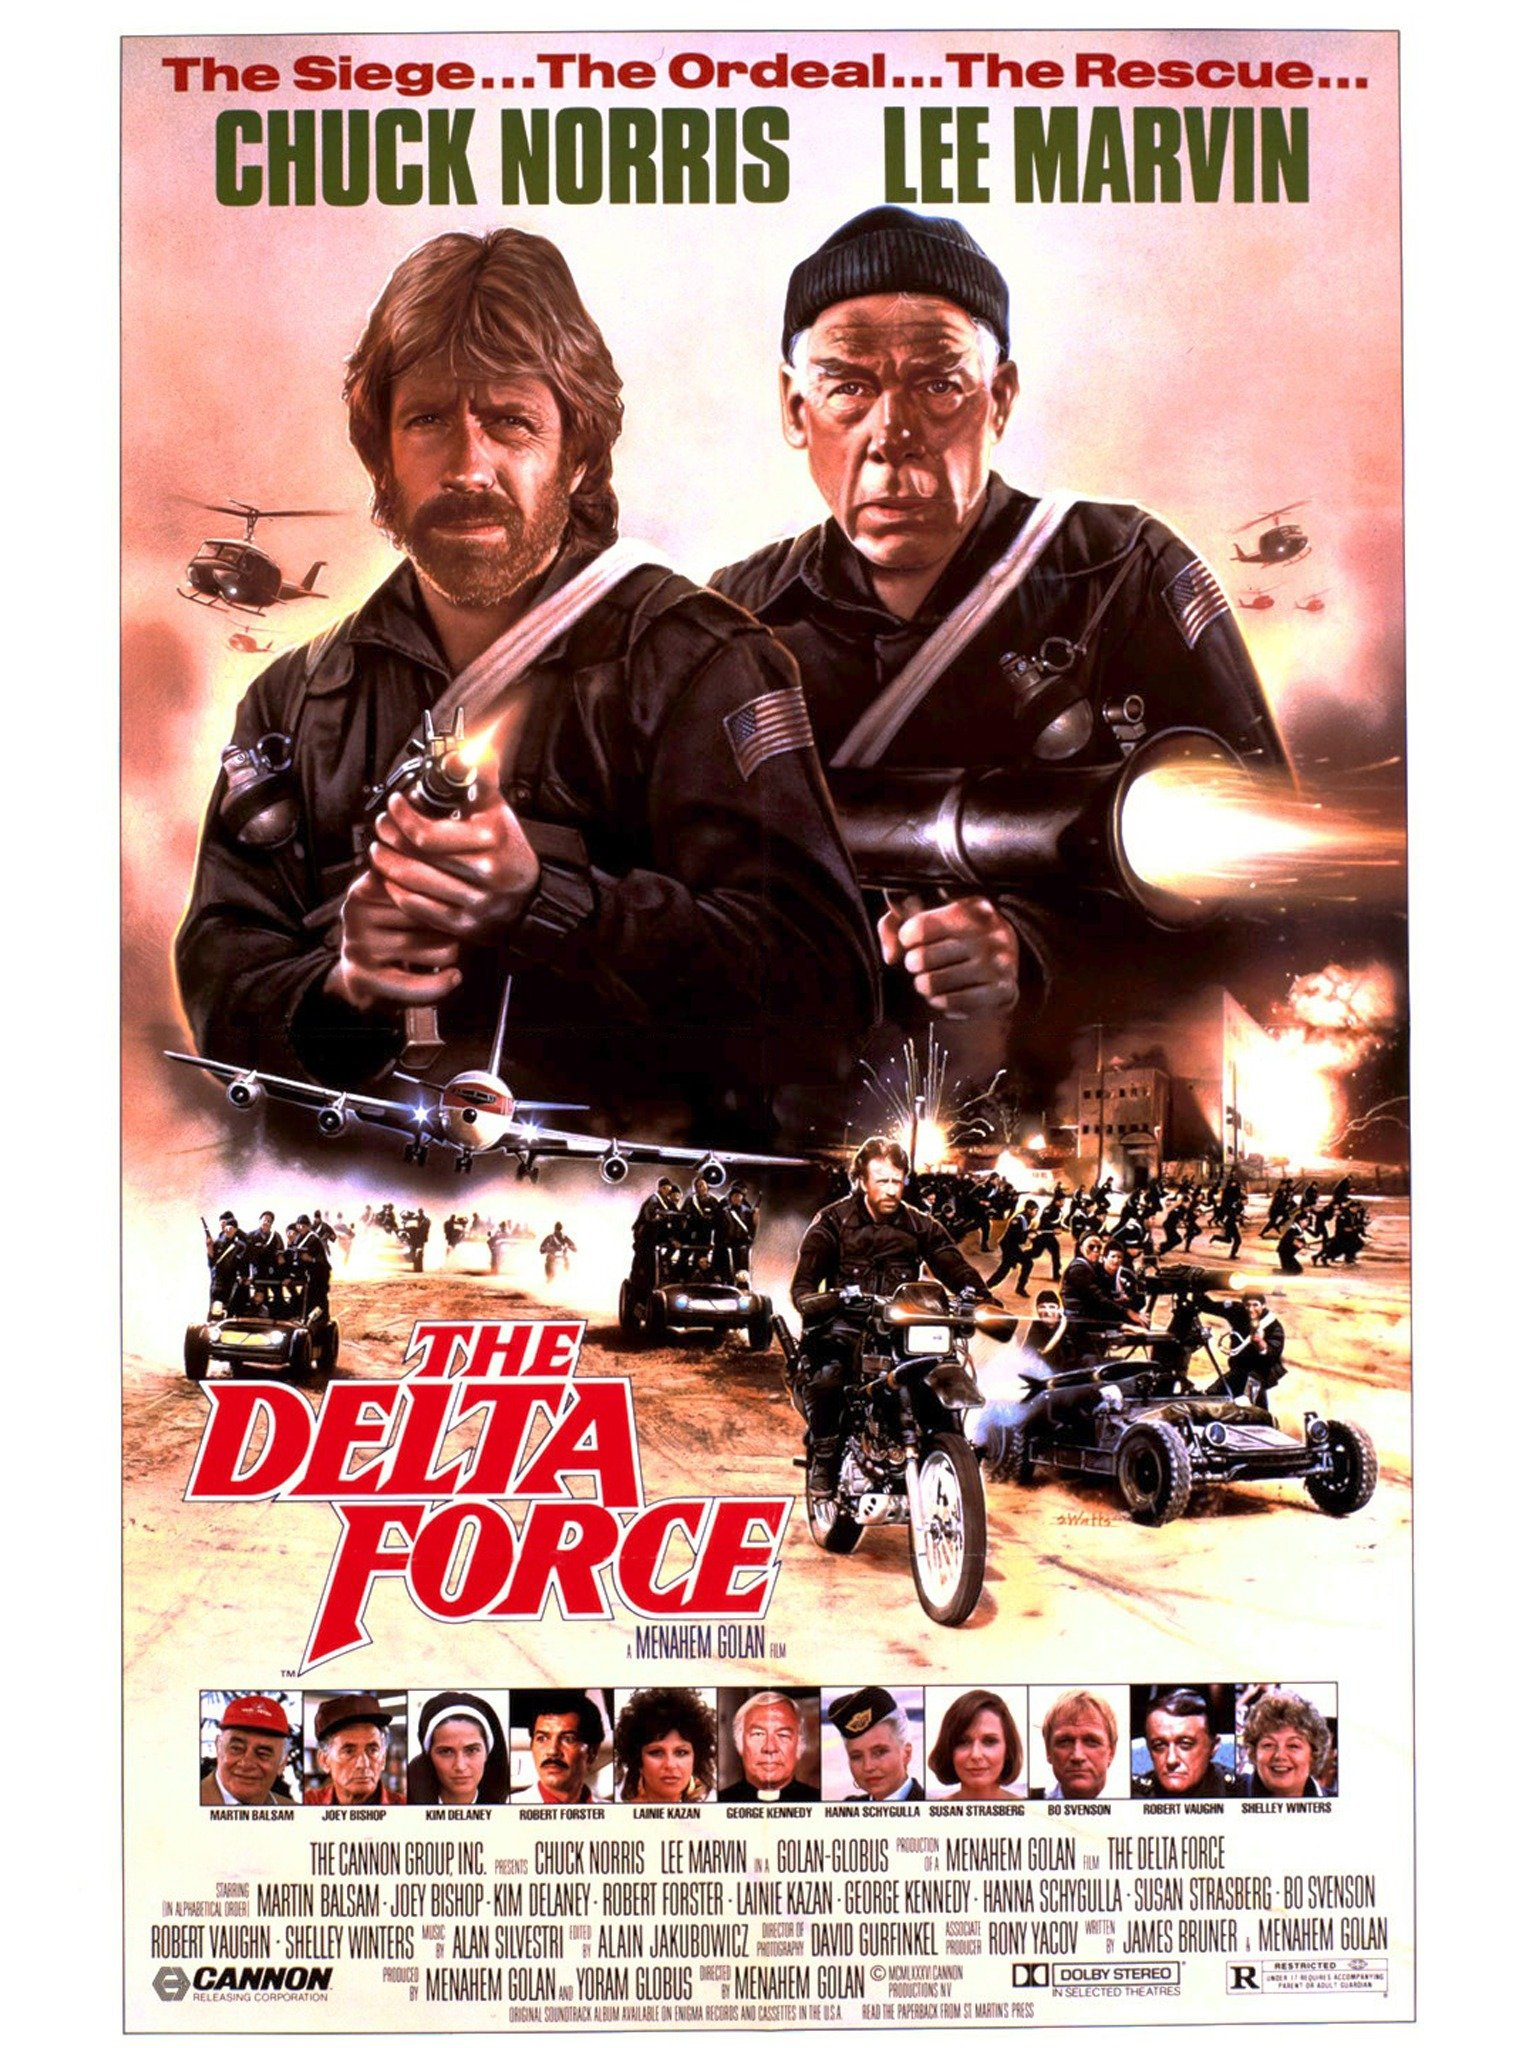 Nonton Film Air Force One : nonton, force, Delta, Force, (1986), Rotten, Tomatoes